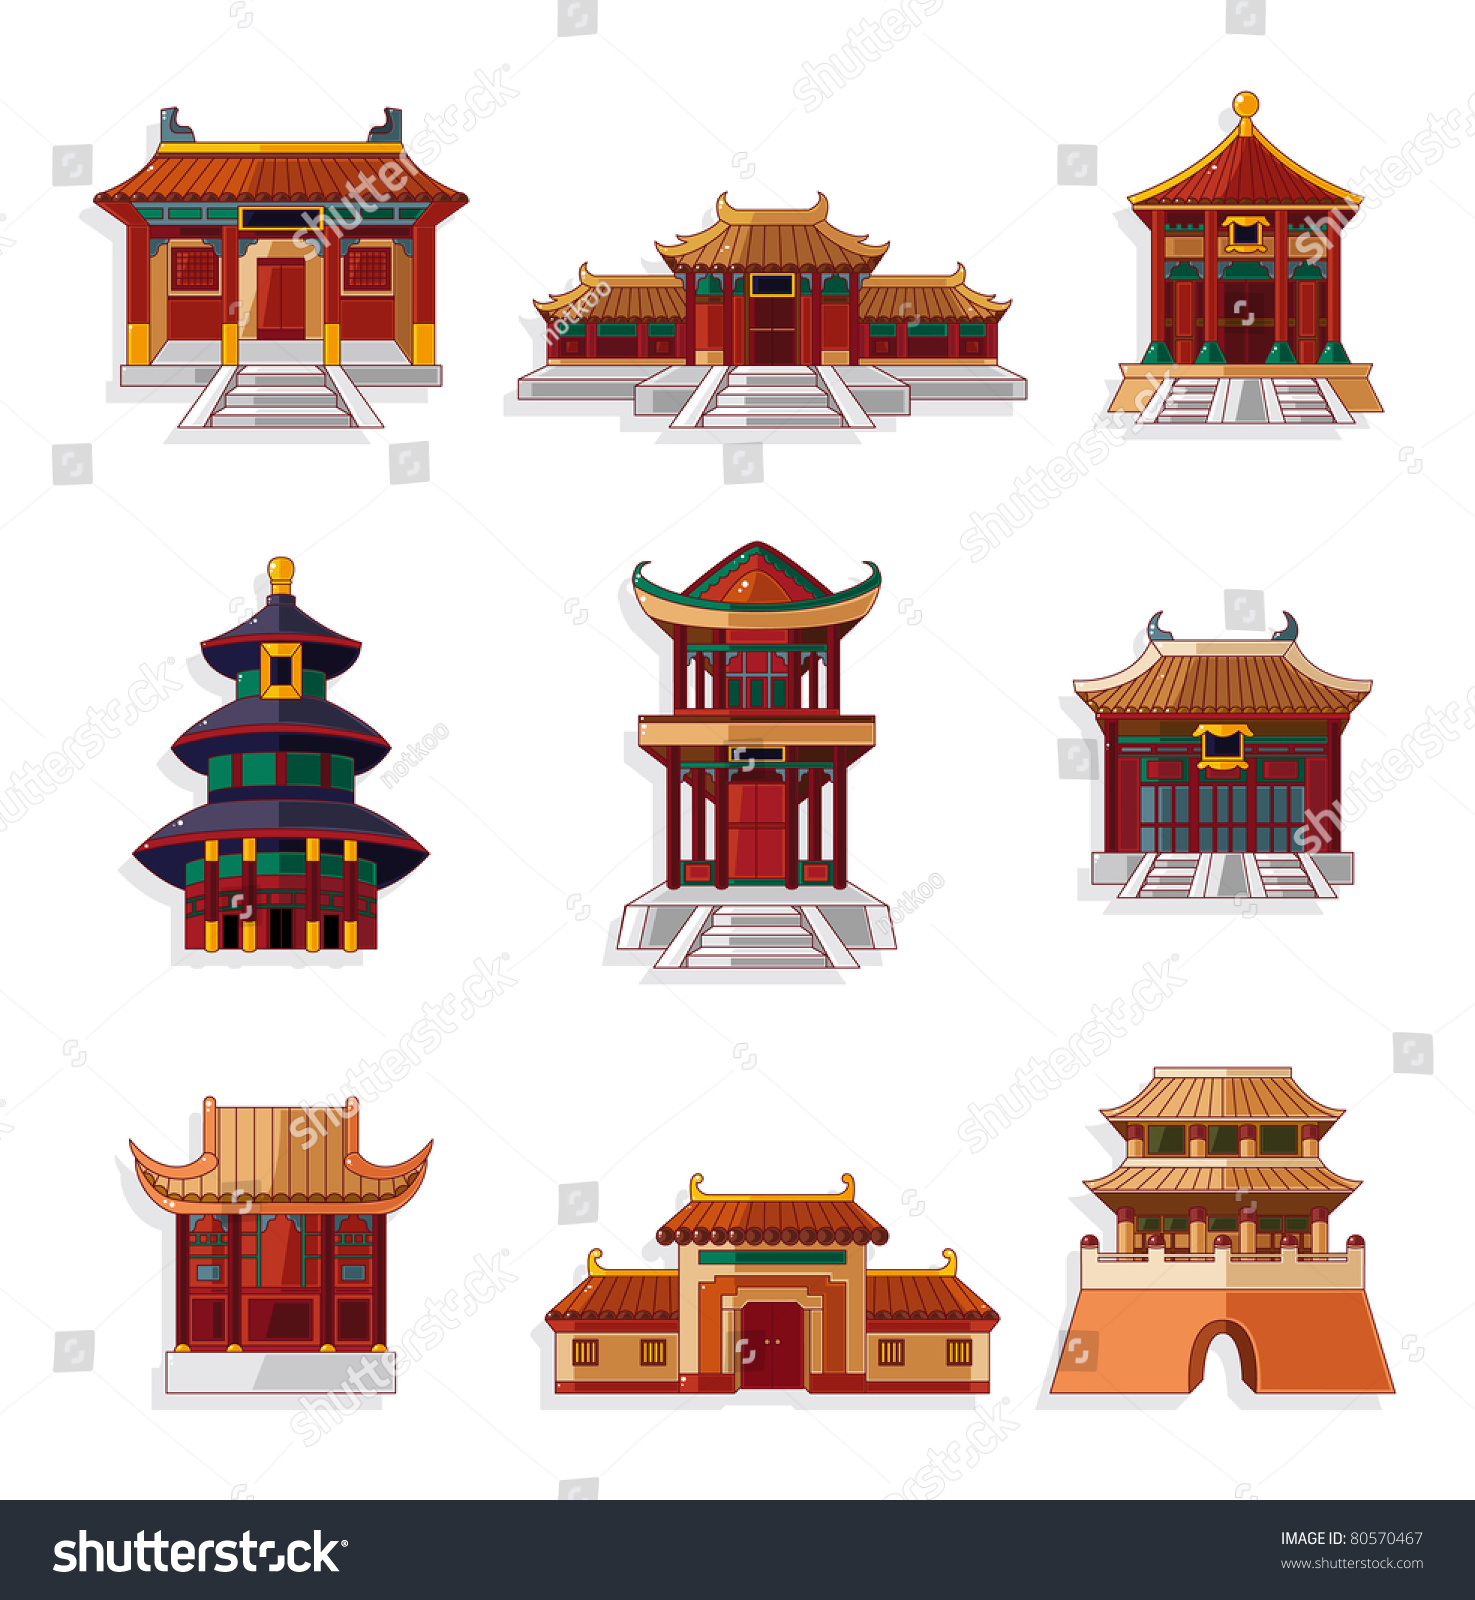 Cartoon Chinese House Icon Set Stock Vector Illustration 80570467 ...: www.shutterstock.com/pic-80570467/stock-vector-cartoon-chinese...